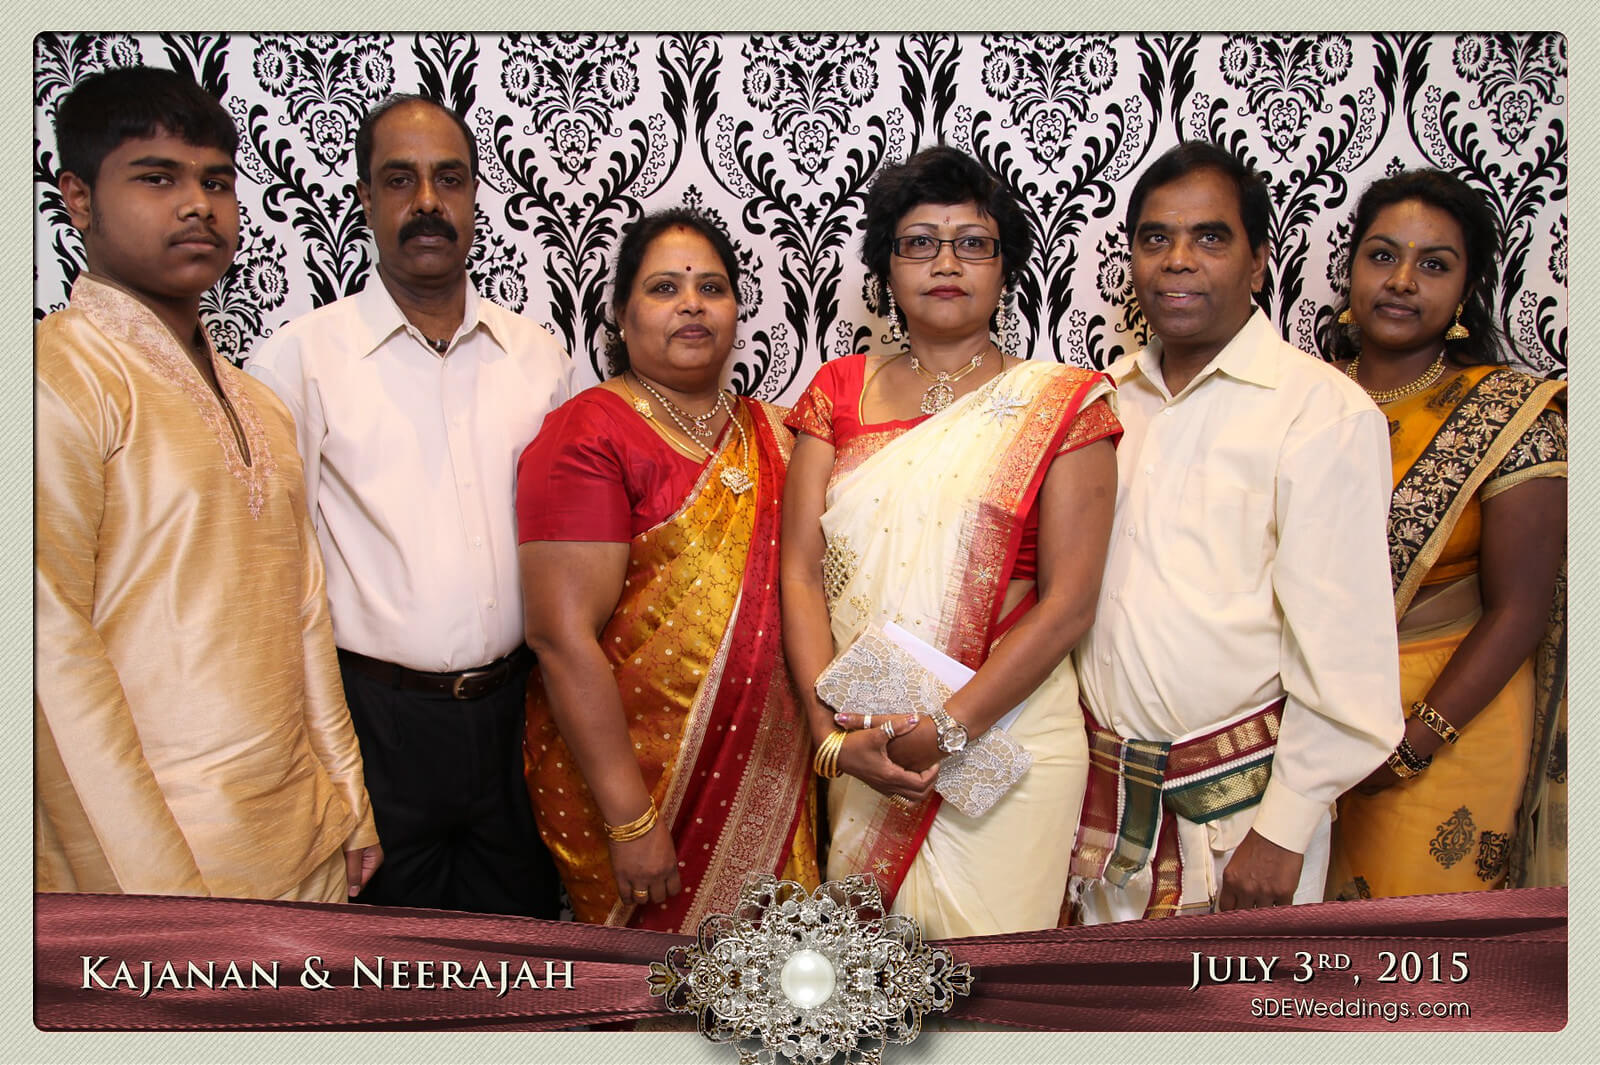 Toronto Scarborough Convention Centre Hindu Wedding Photo Booth Rental 7